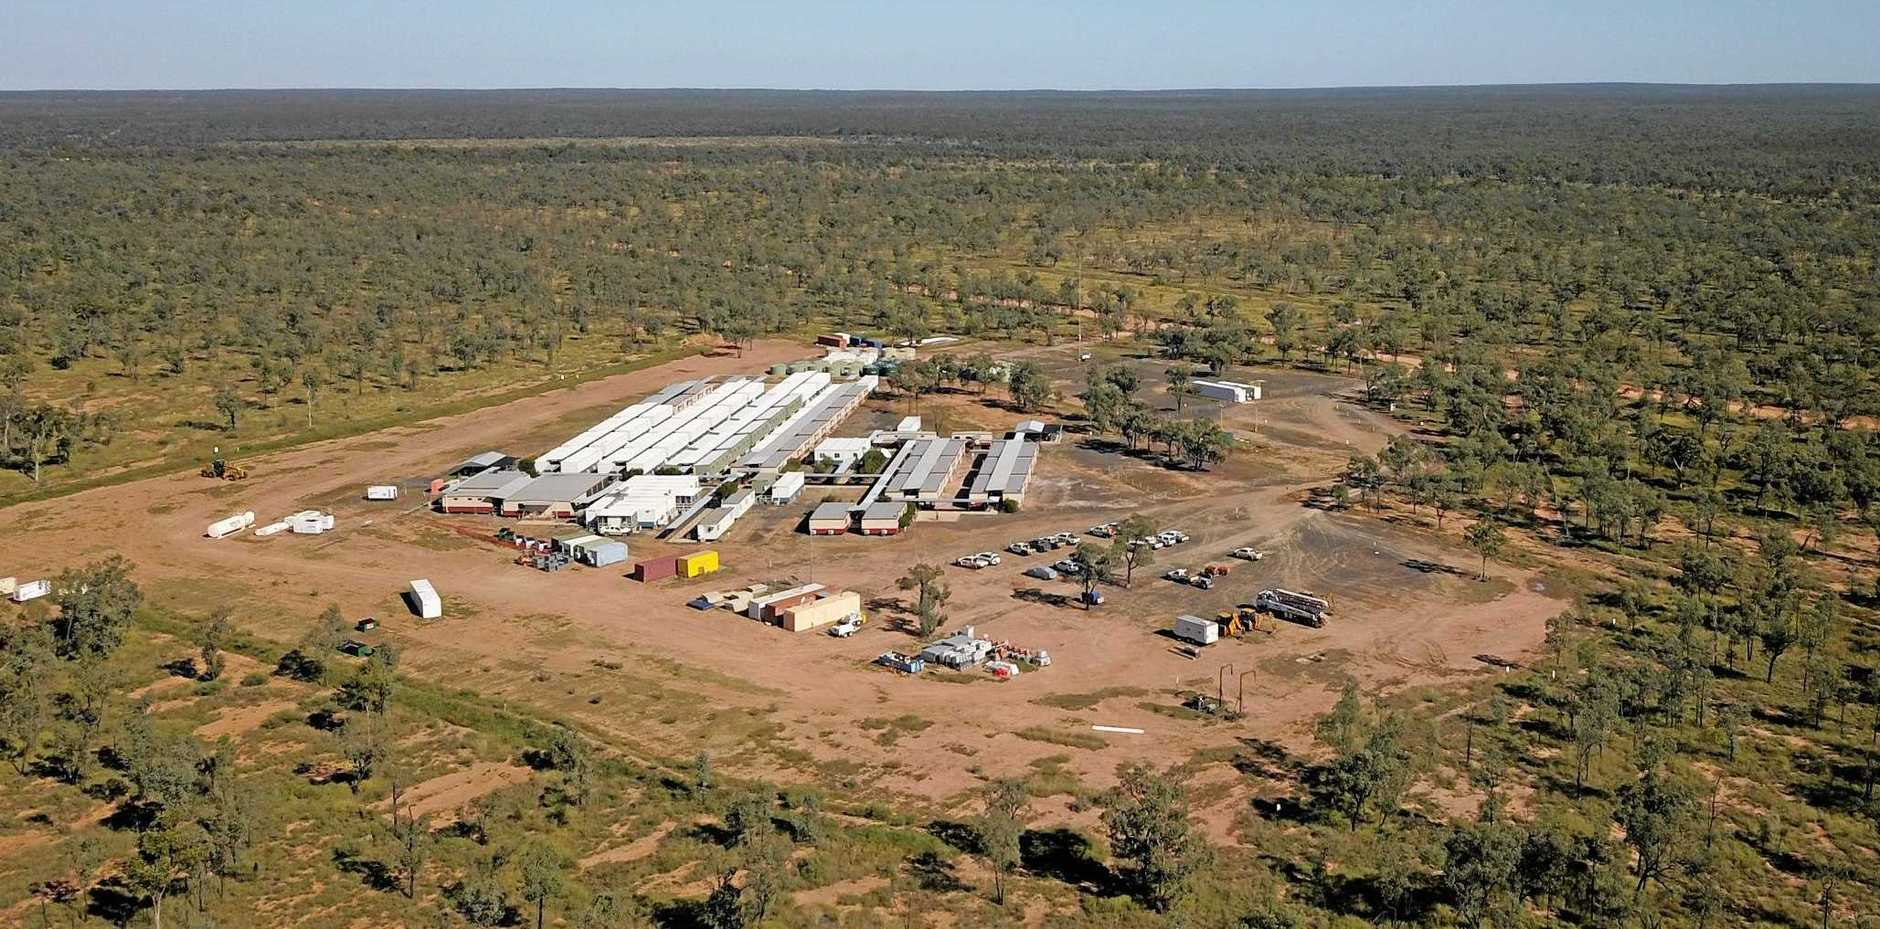 Land clearing and surveying is under way at Adani's Carmichael mine site.